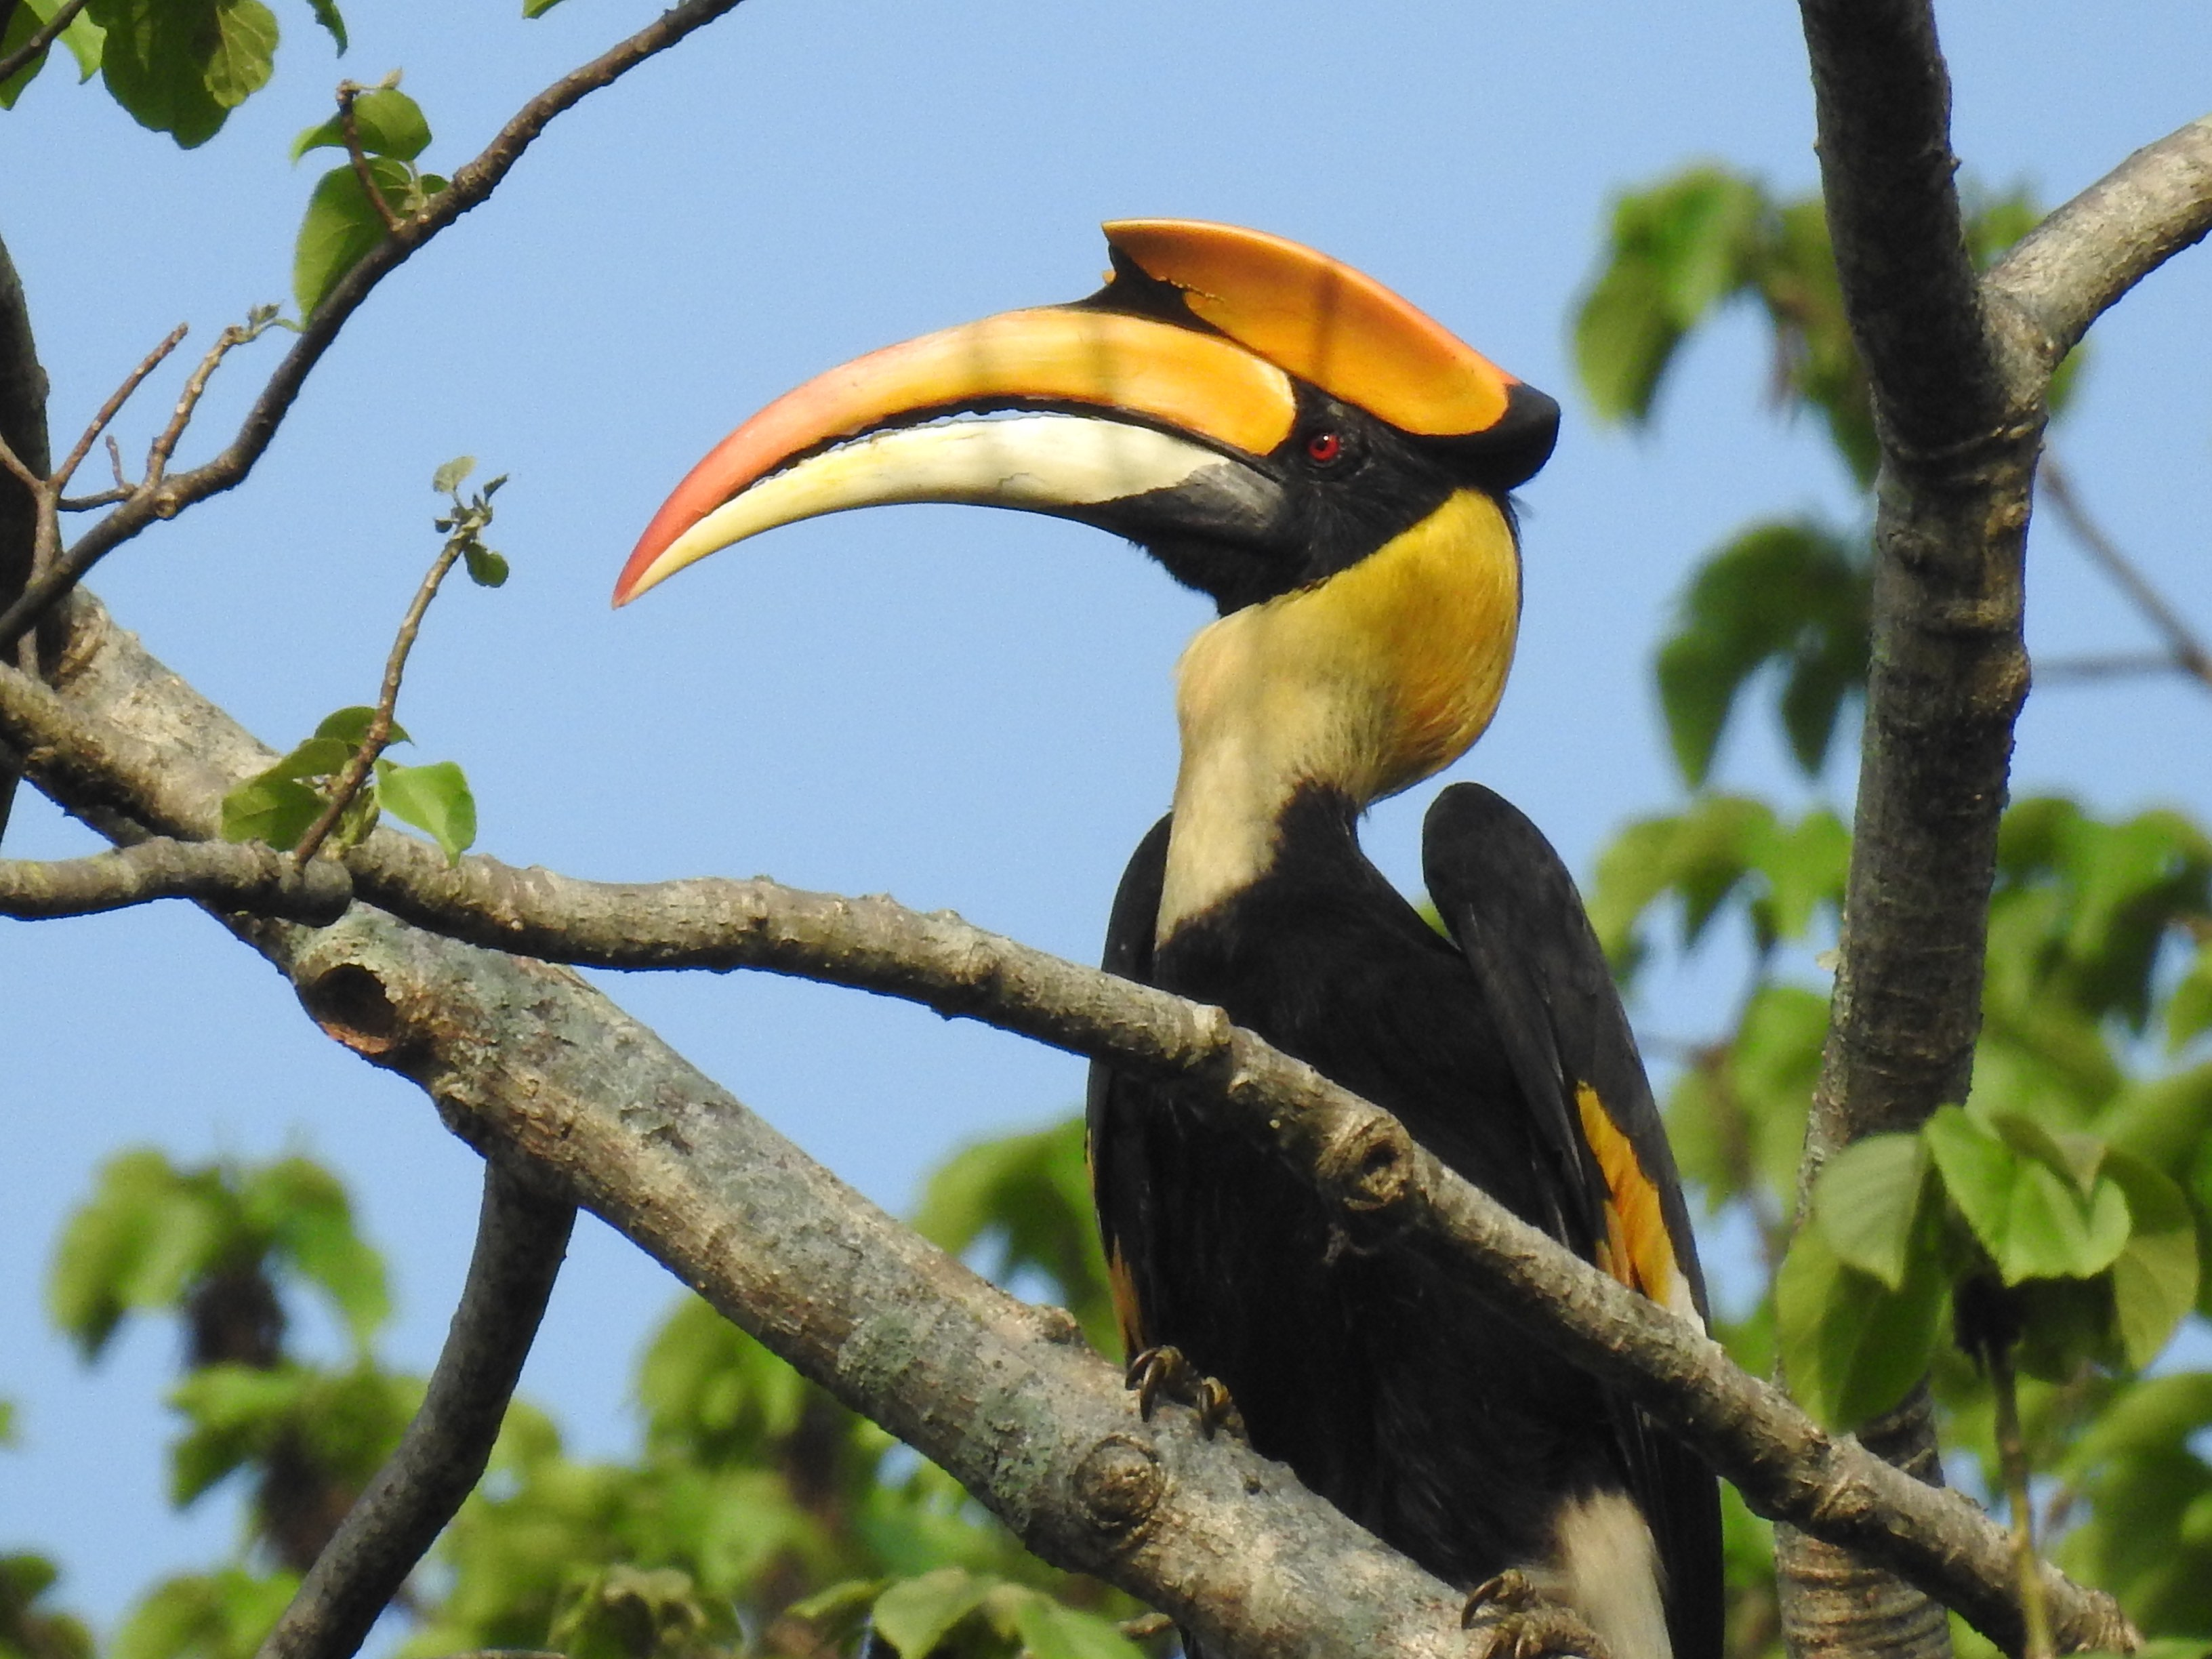 Male and female great hornbills can be identified through small differences. For instance, the males have red eyes with black skin around, while females have white eyes with red skin around. The males also have their casques edged with black in the front, while females have no black. Females are also smaller than males. Photo: Aparajita Datta